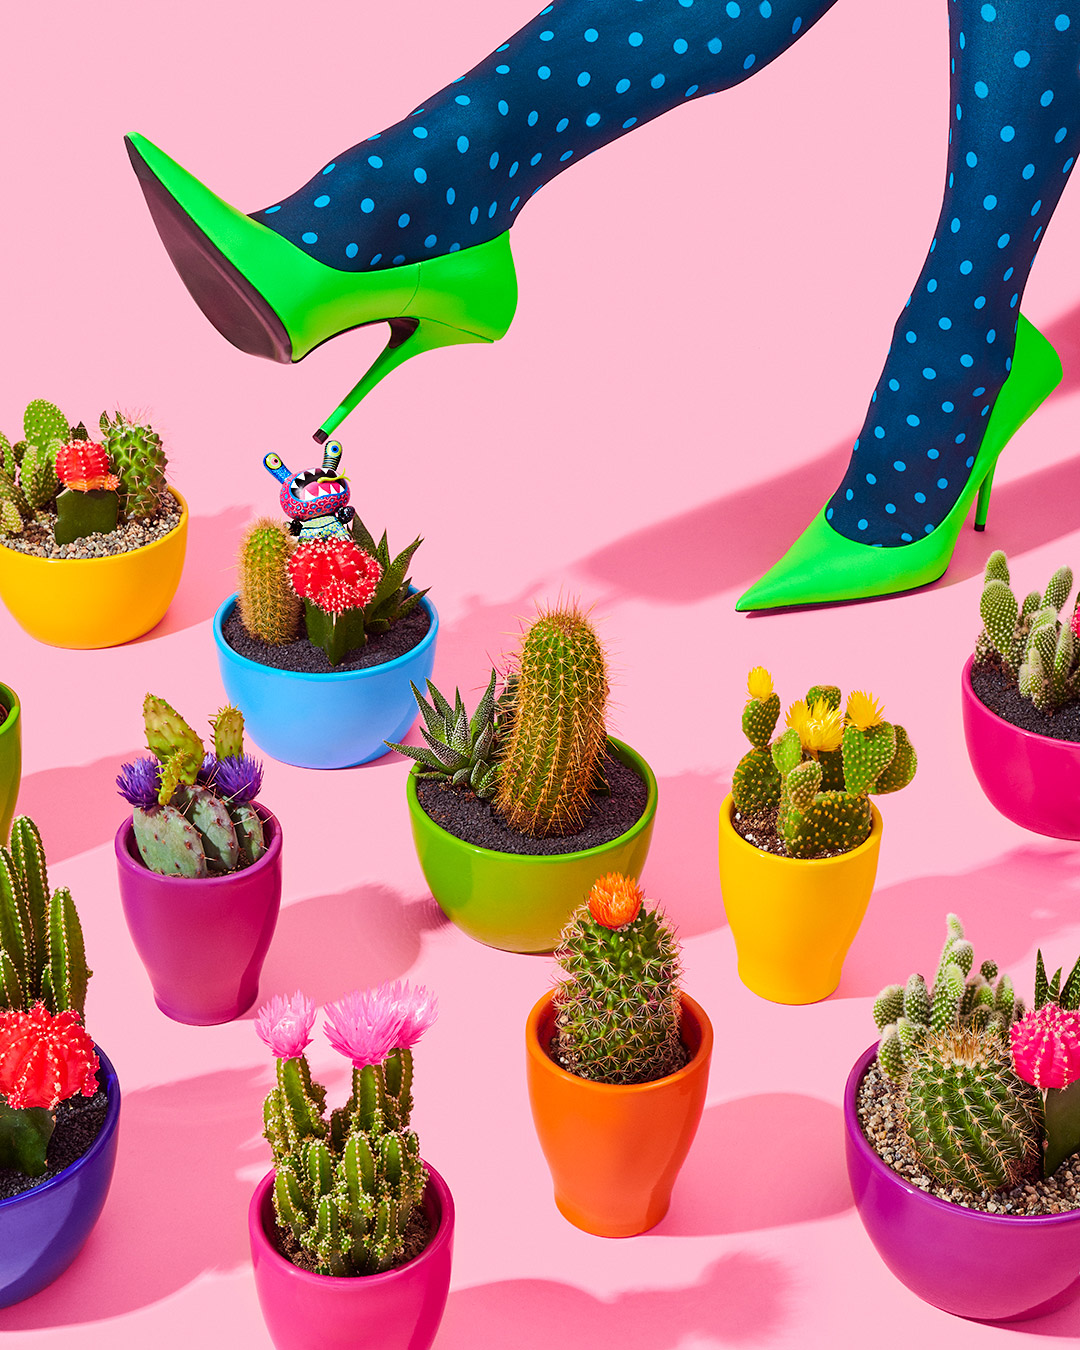 credits: photo - jenna gang, styling - chelsea volpe, nails - natsume chiharu, model - pauline sherrow  description: model wearing a green balenciaga heels stepping onto a set of rainbow cactus.